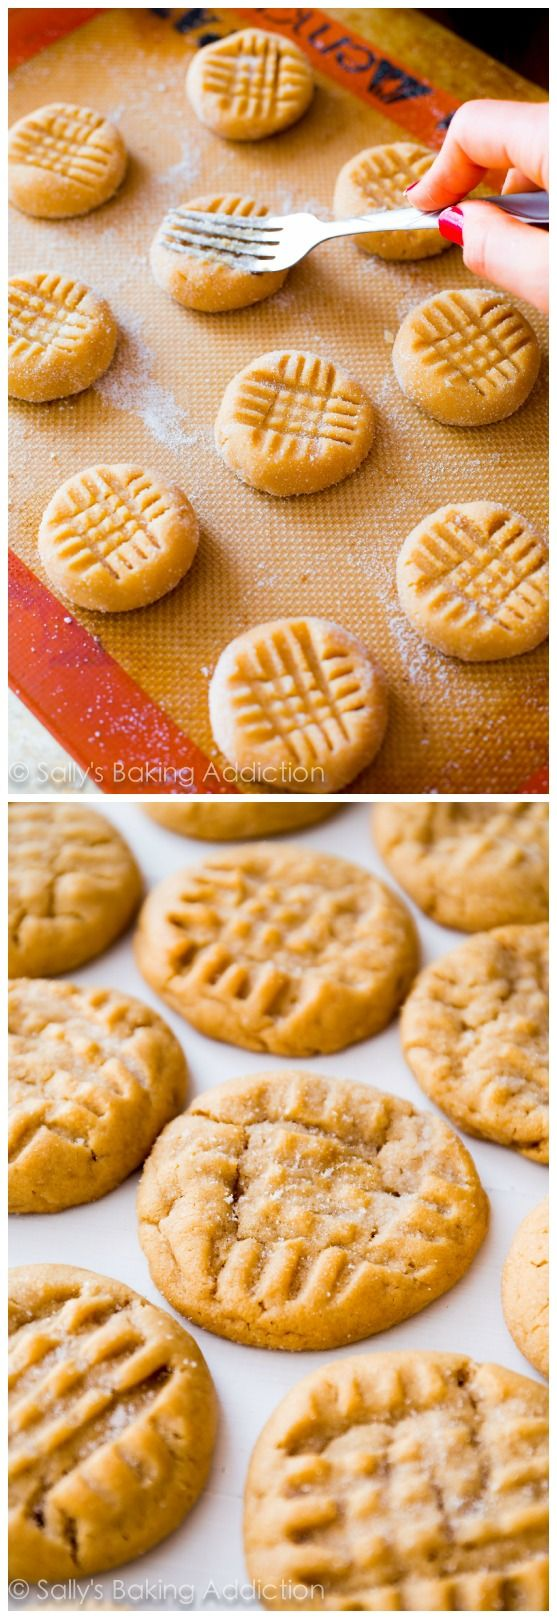 Classic Peanut Butter Cookies  by sallysbakingadicition:  Easy to make, easier to eat! #Cookies #Peanut_Butter